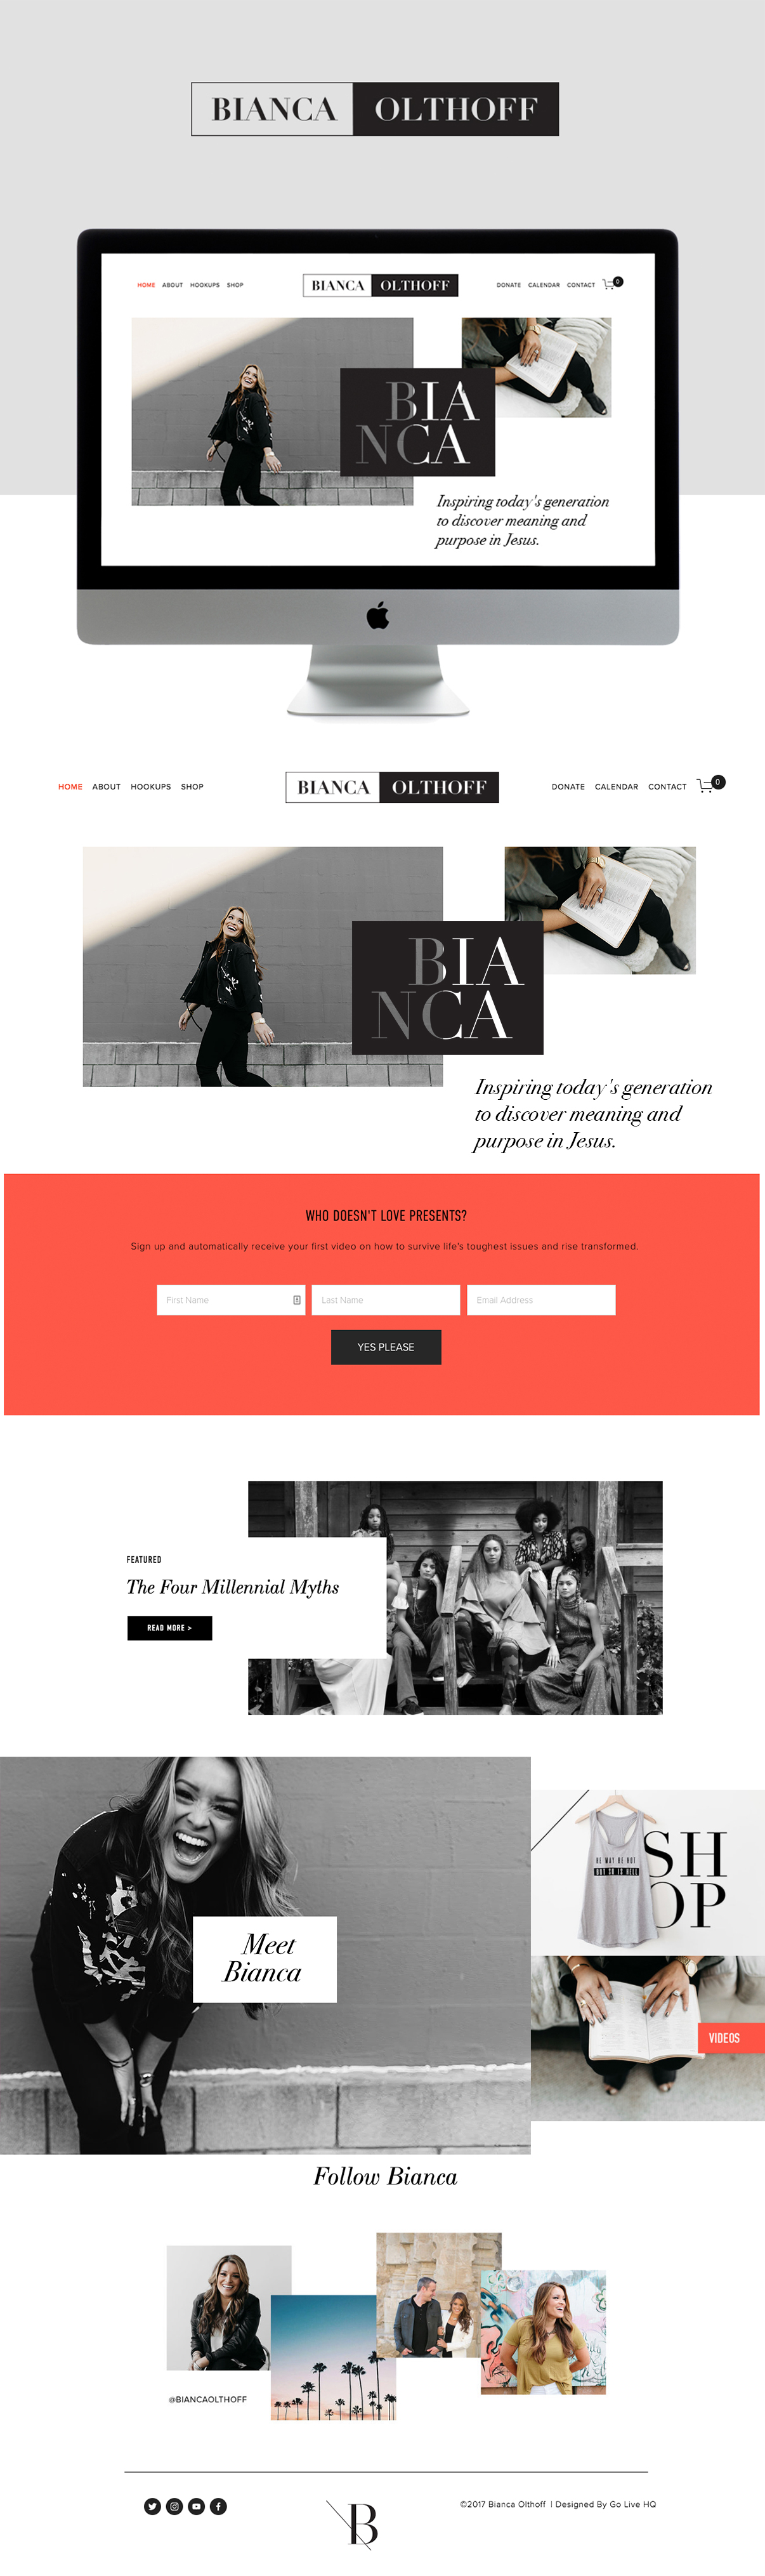 editorial and bold squarespace website design | designed by: golivehq.co